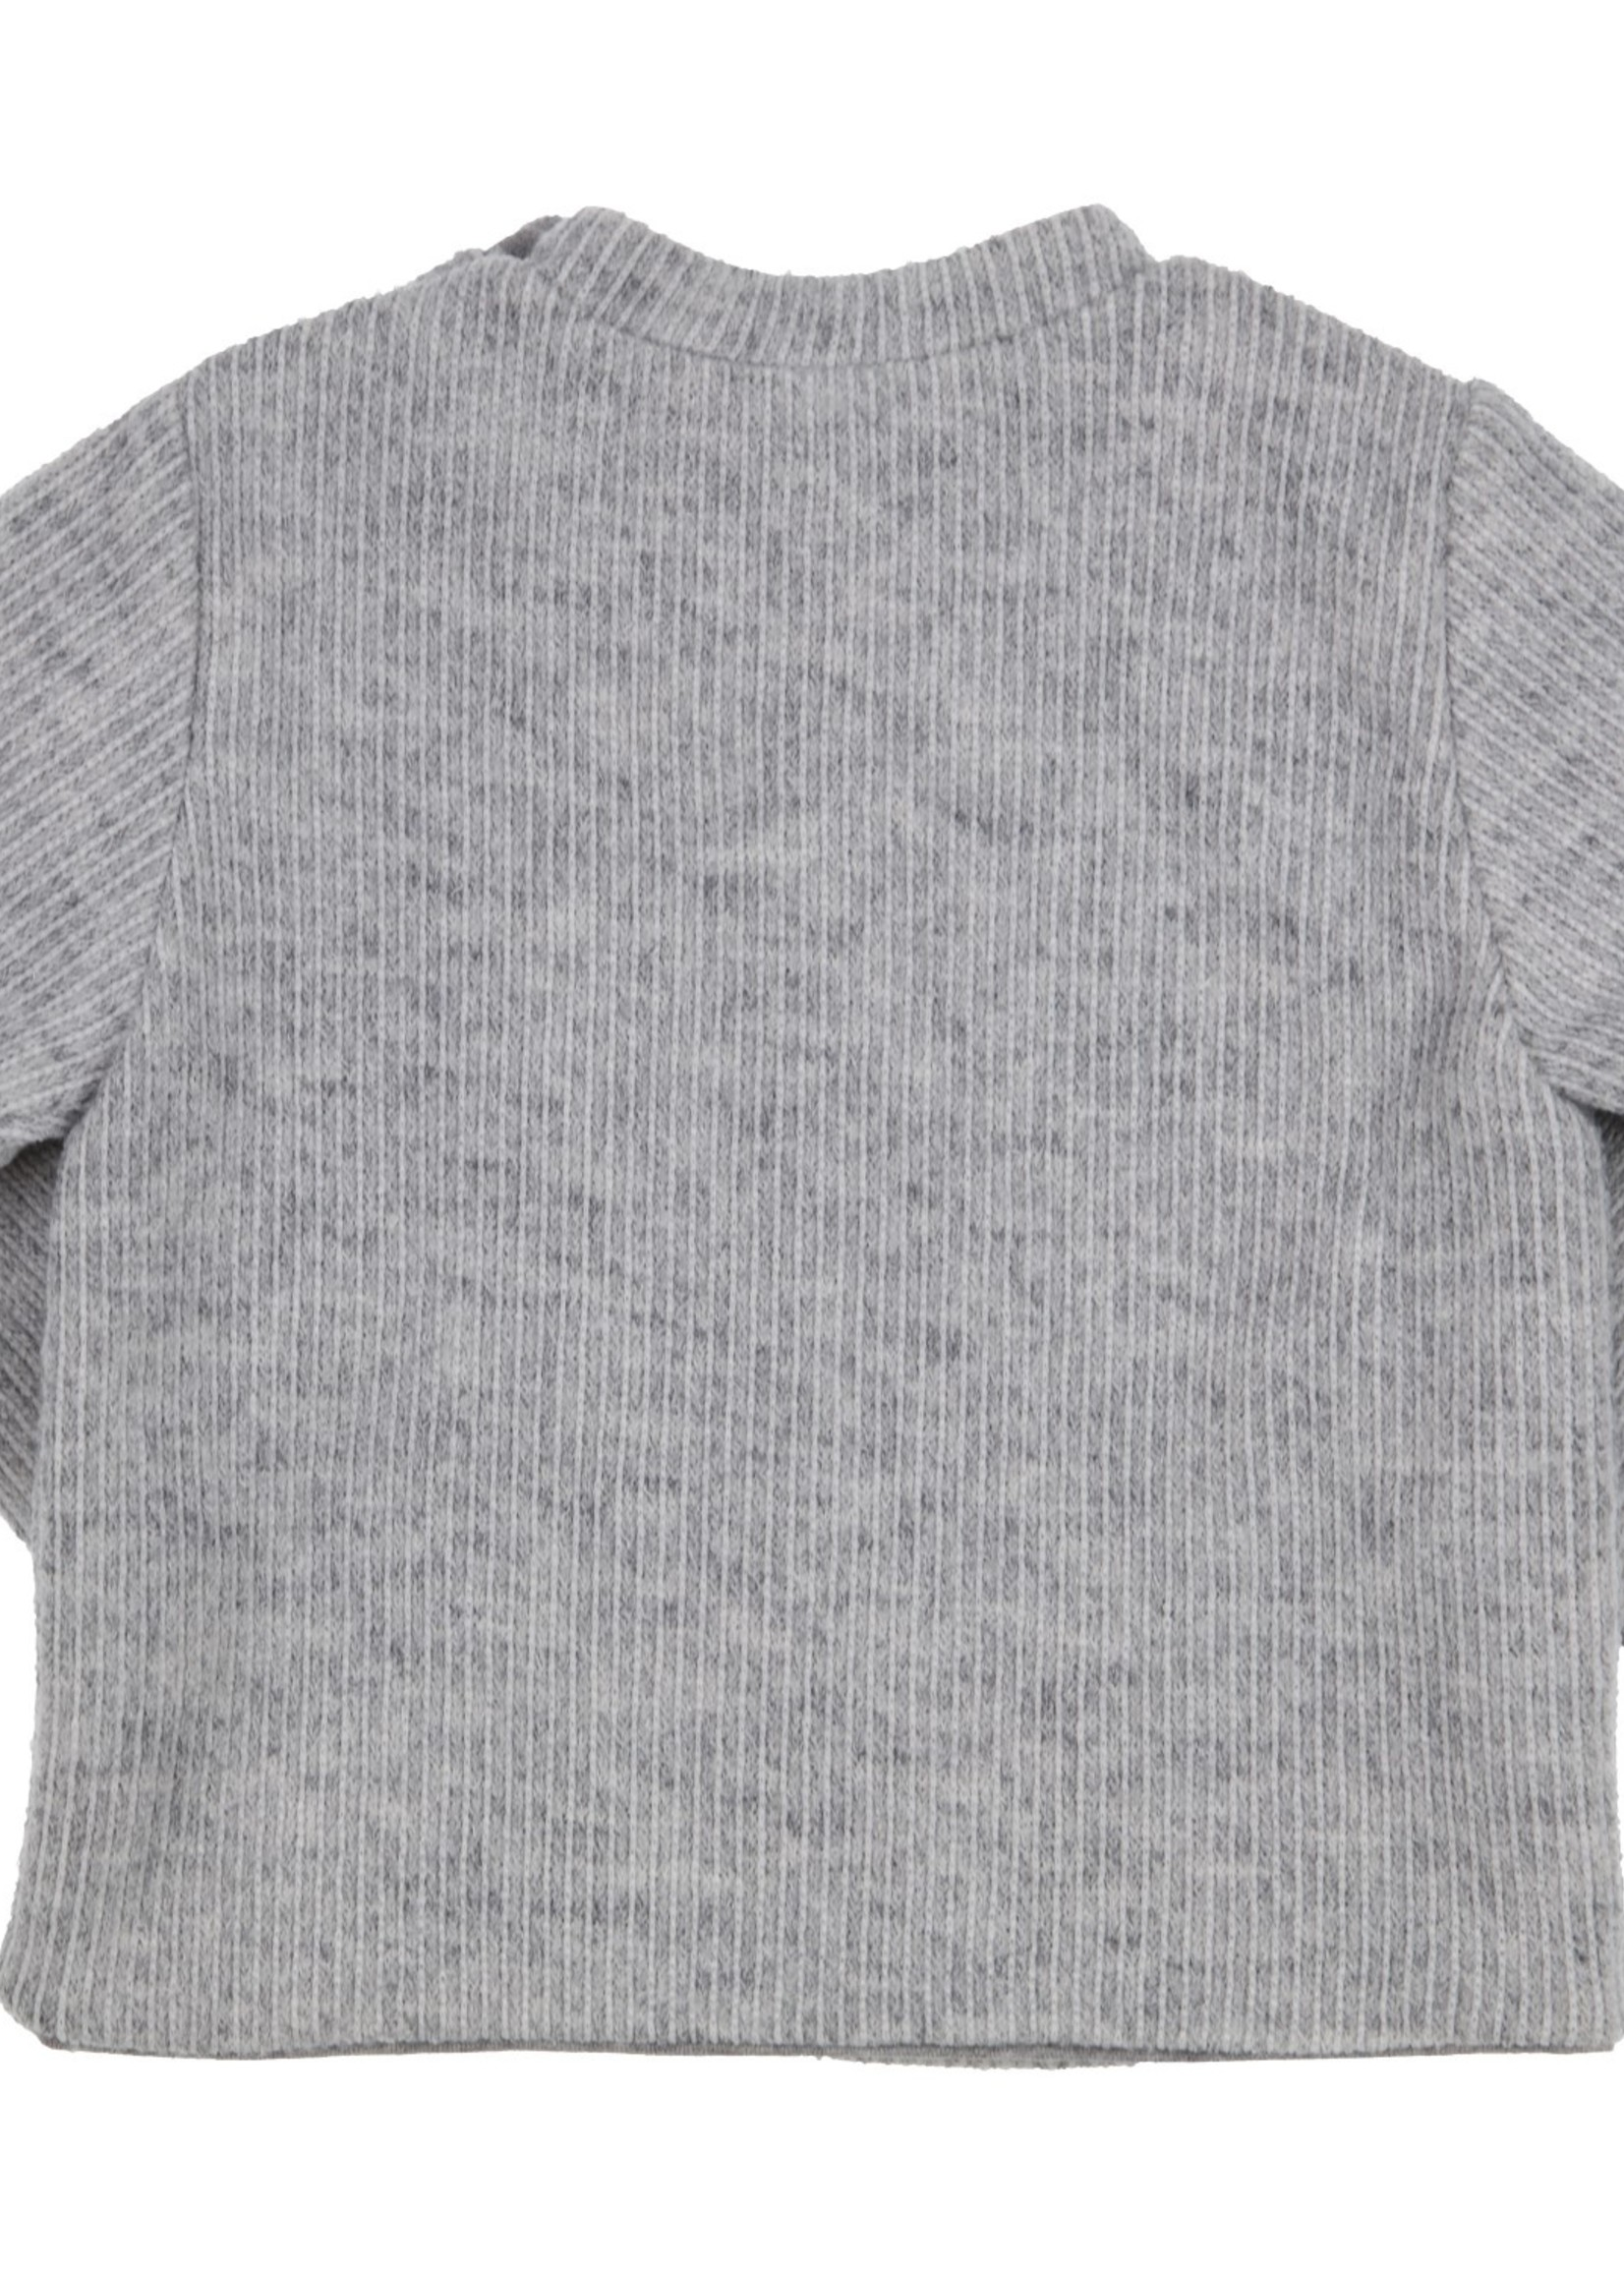 Gymp Gymp pullover sweater grijs